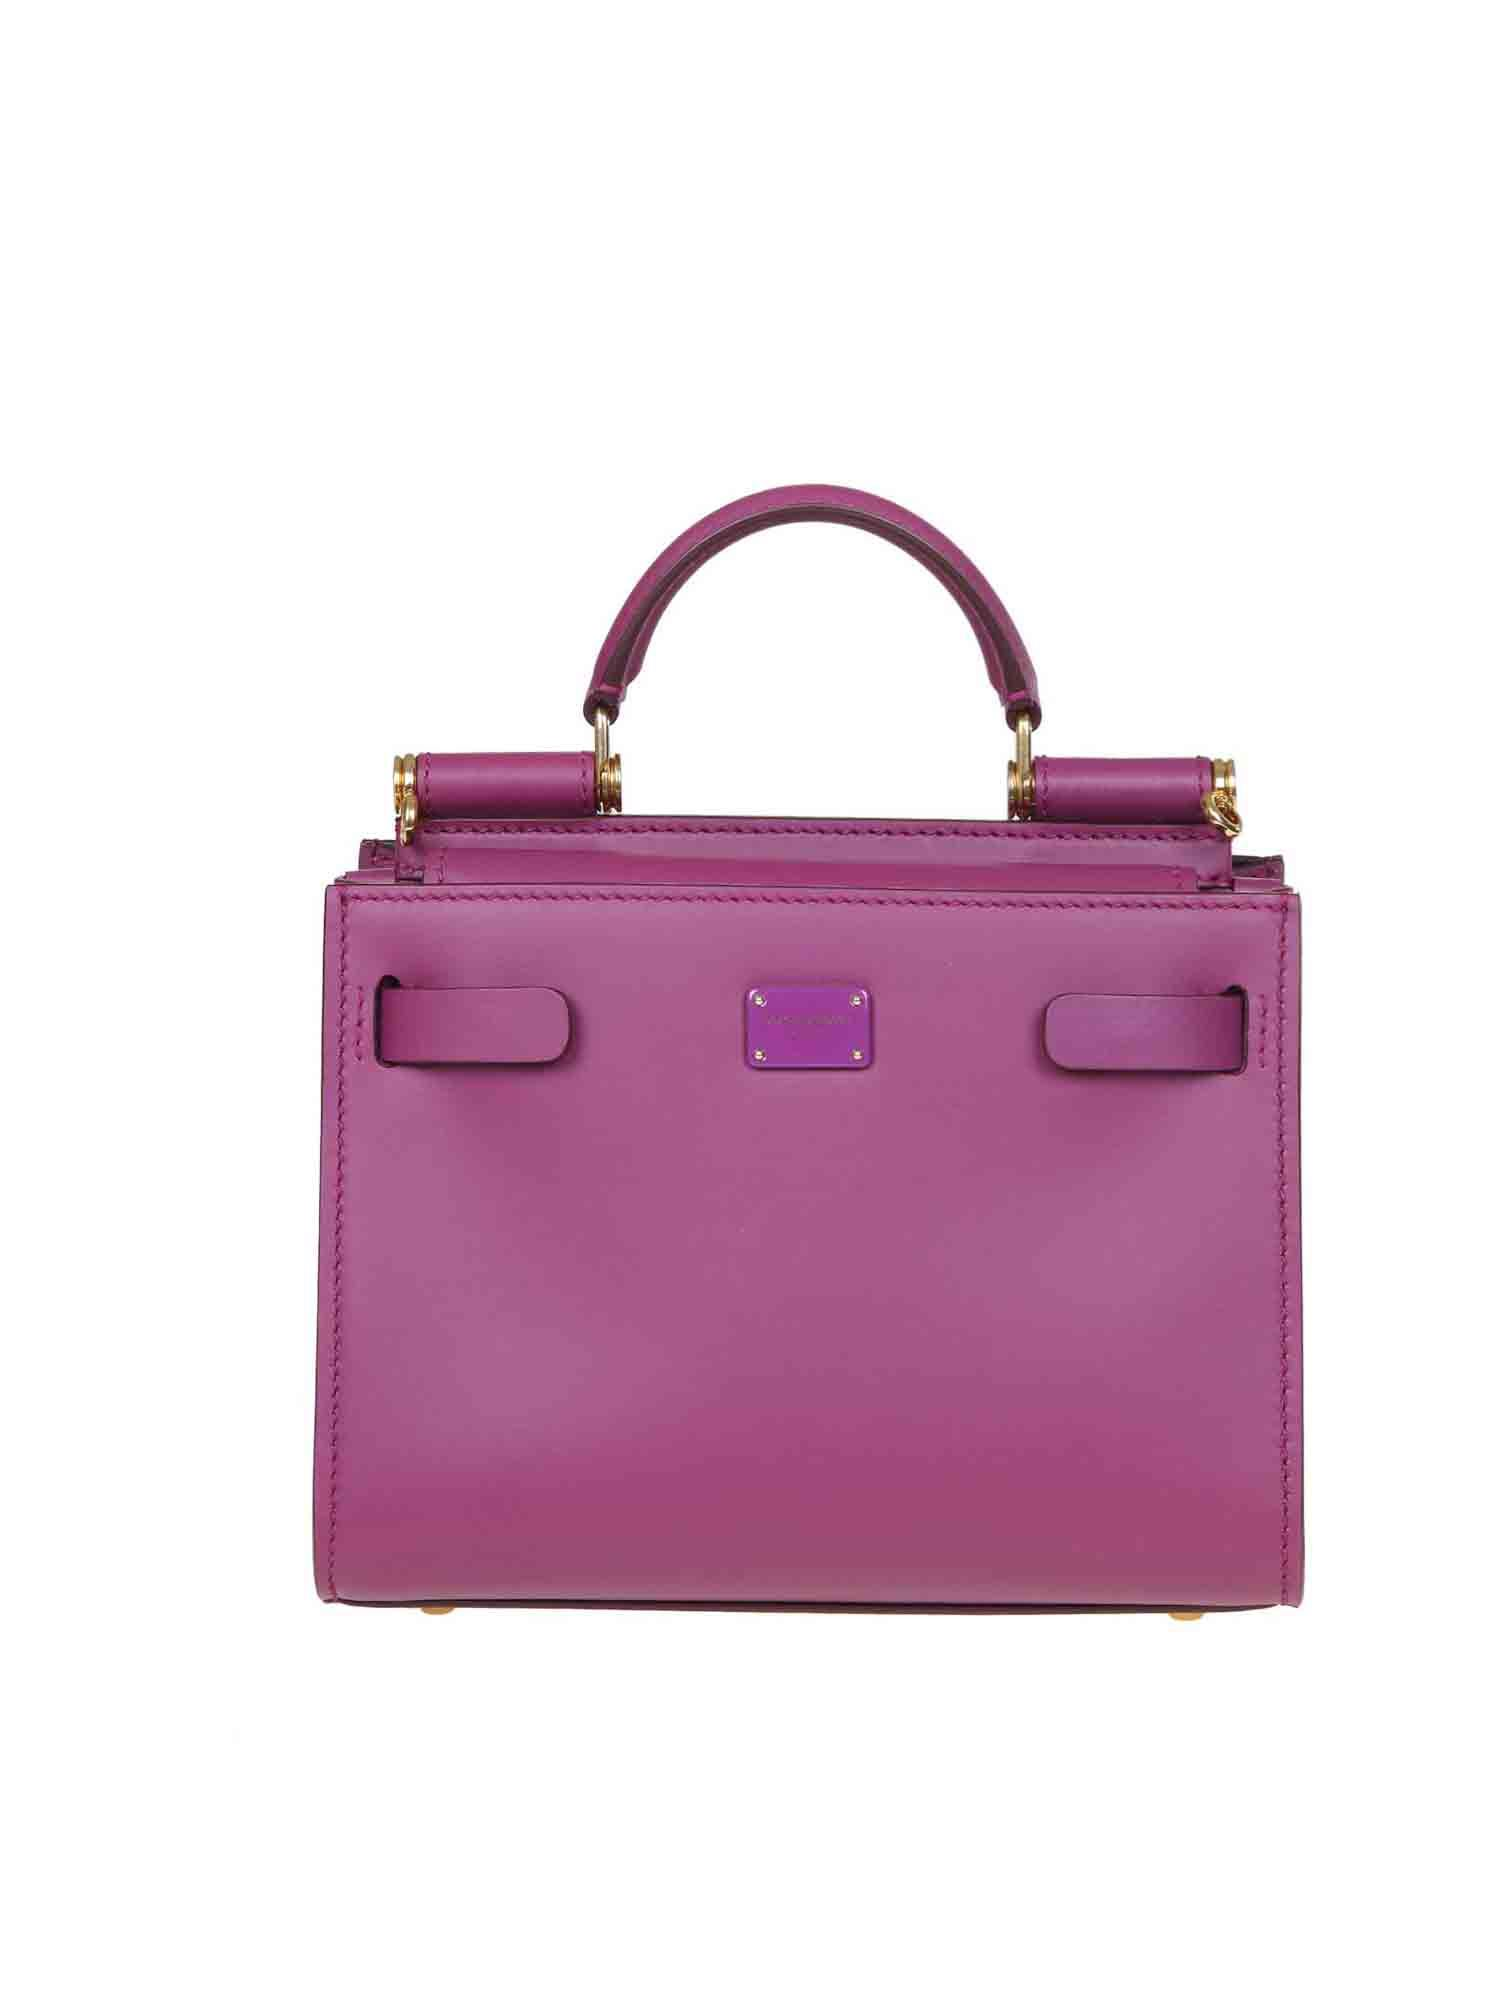 DOLCE & GABBANA SICILY 62 MINI BAG IN PLUM COLOR